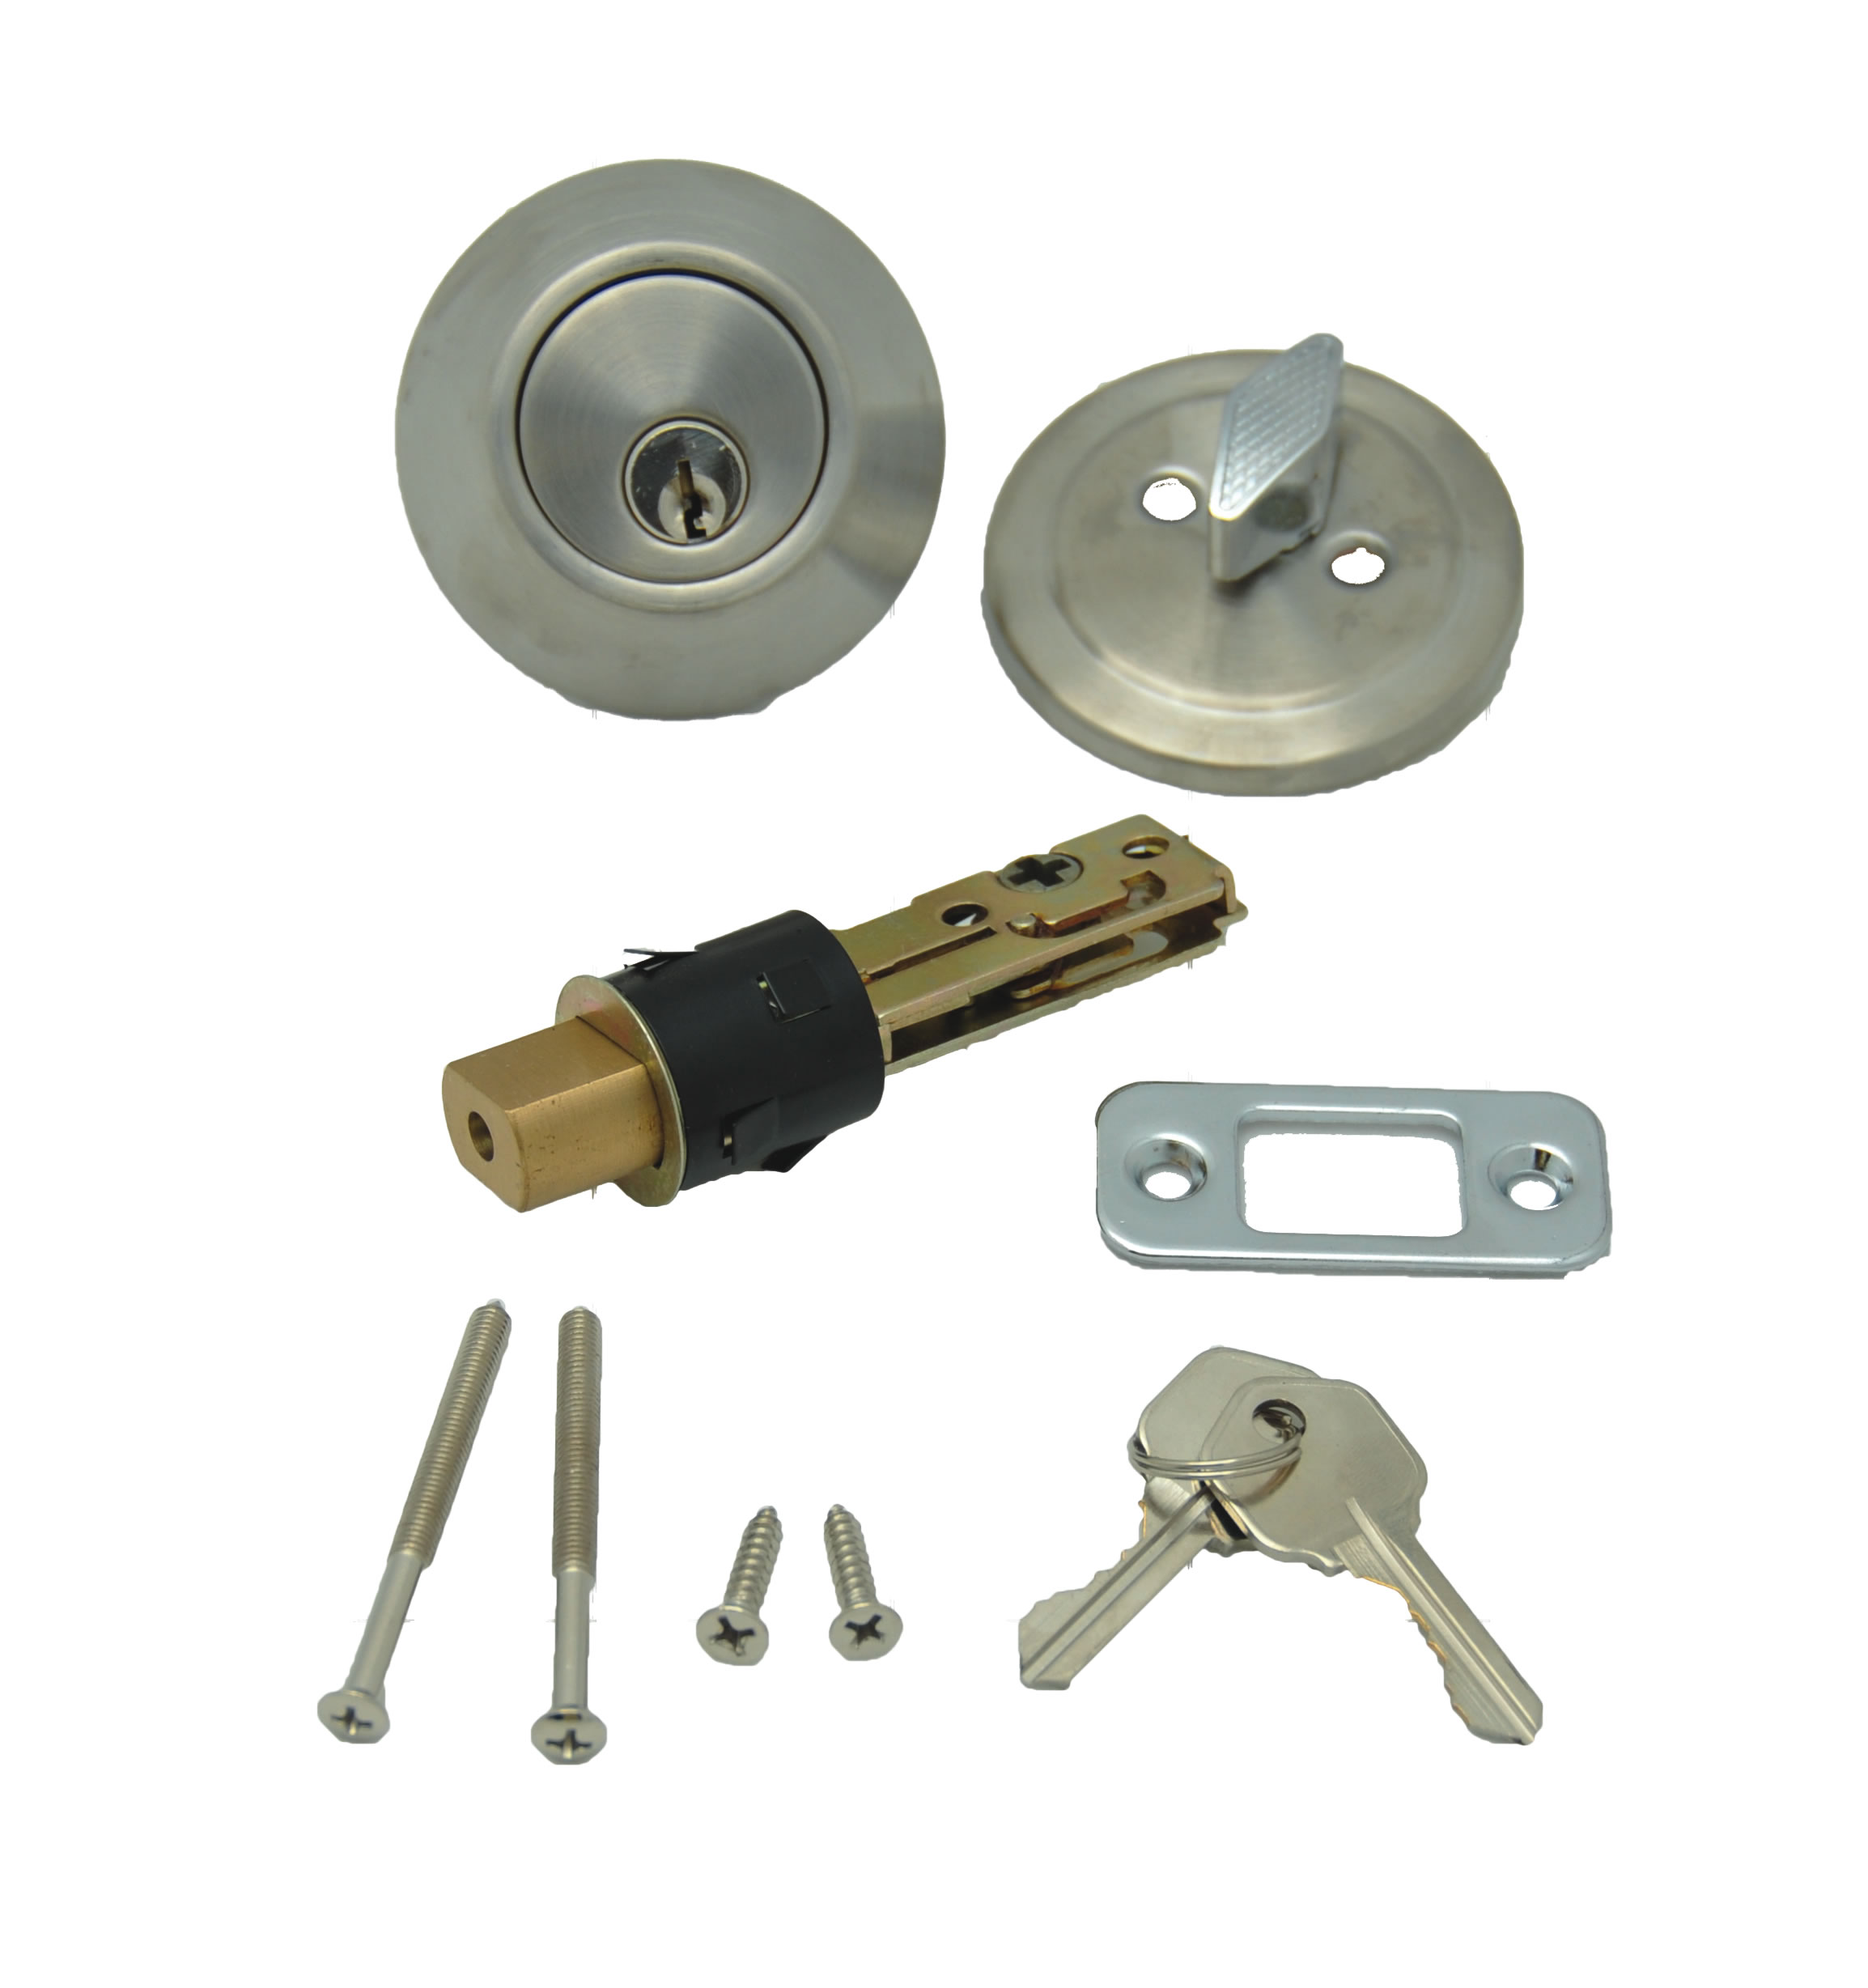 013 222 Ss Ap Products Entry Door Lock Single Deadbolt